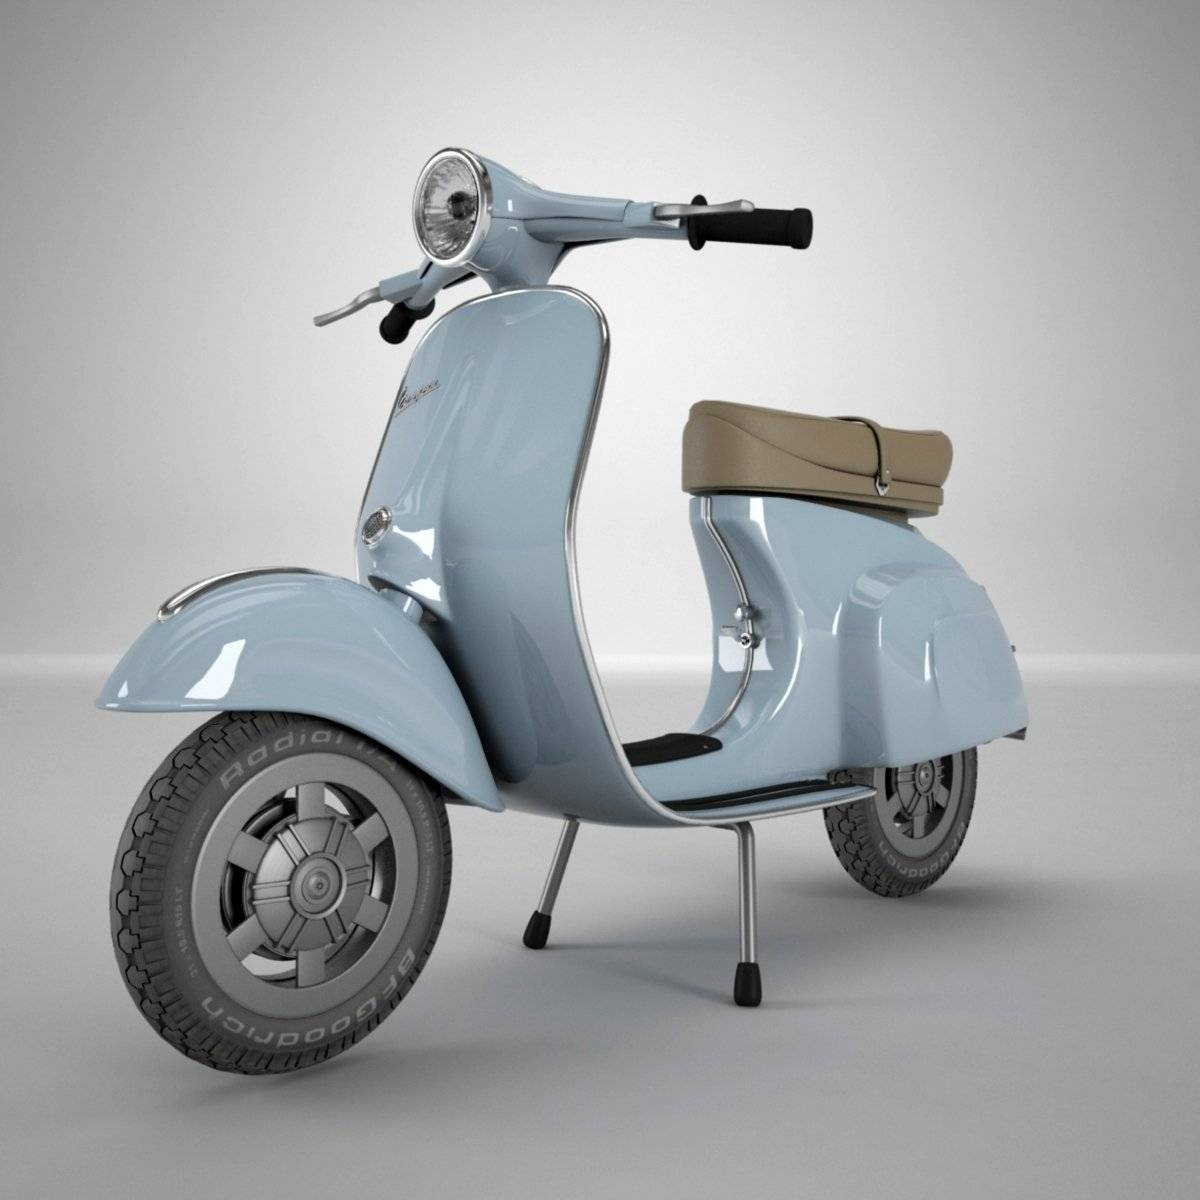 Vespa 3d Model In Motorcycle 3dexport Intended For Latest Vespa 3d Wall Art (View 5 of 20)